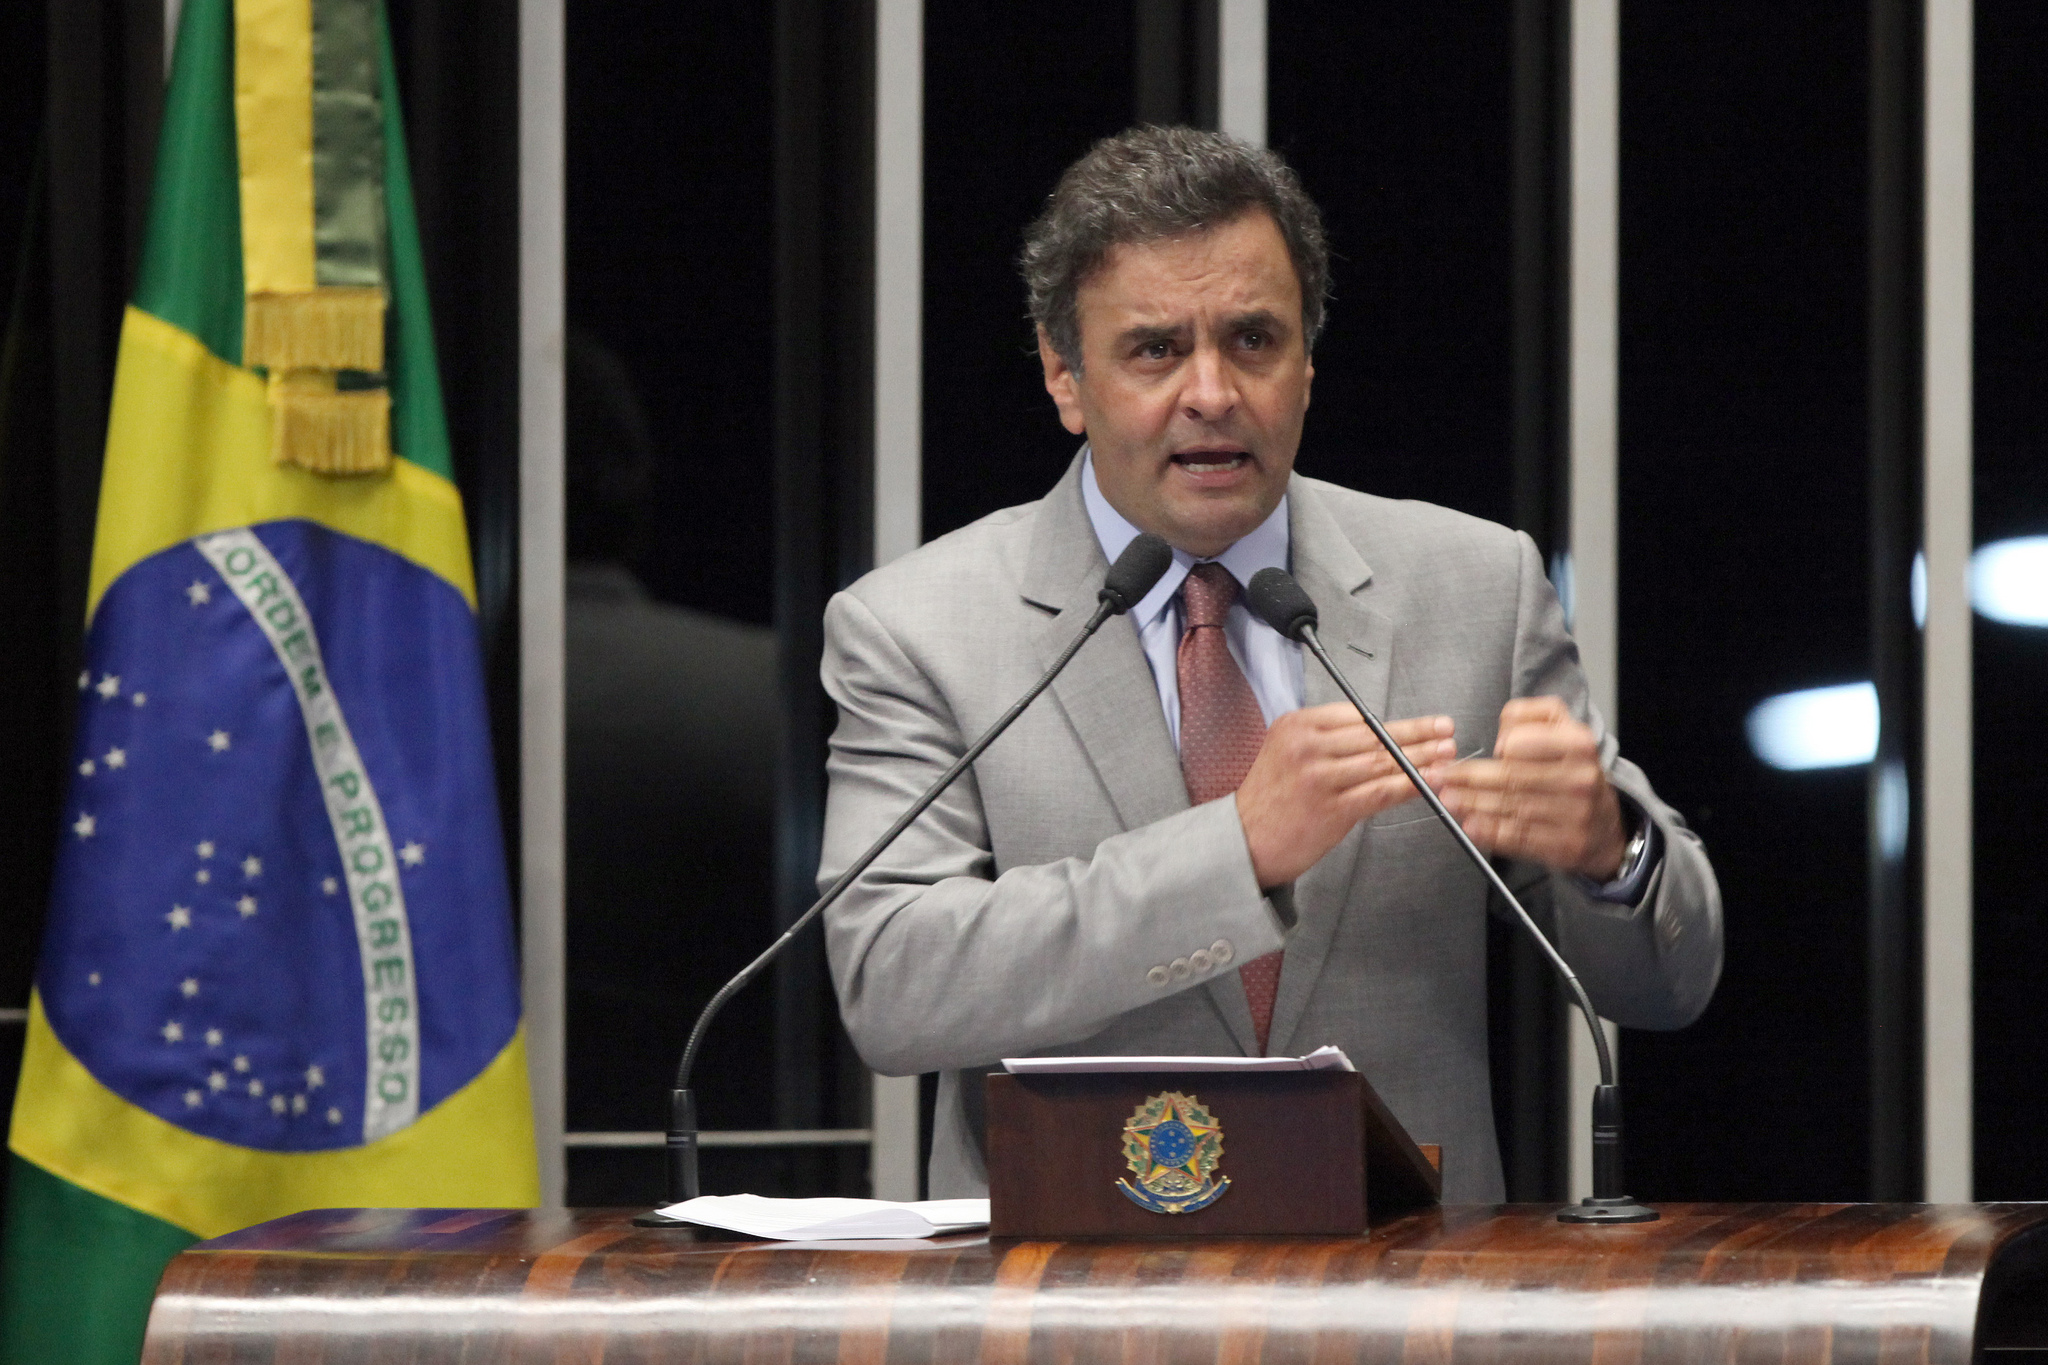 Presidential candidate, Aécio Neves from PSDB Image by: George Gianni/PSDB. Taken from: https://www.flickr.com/photos/psdbminasgerais/9142079303